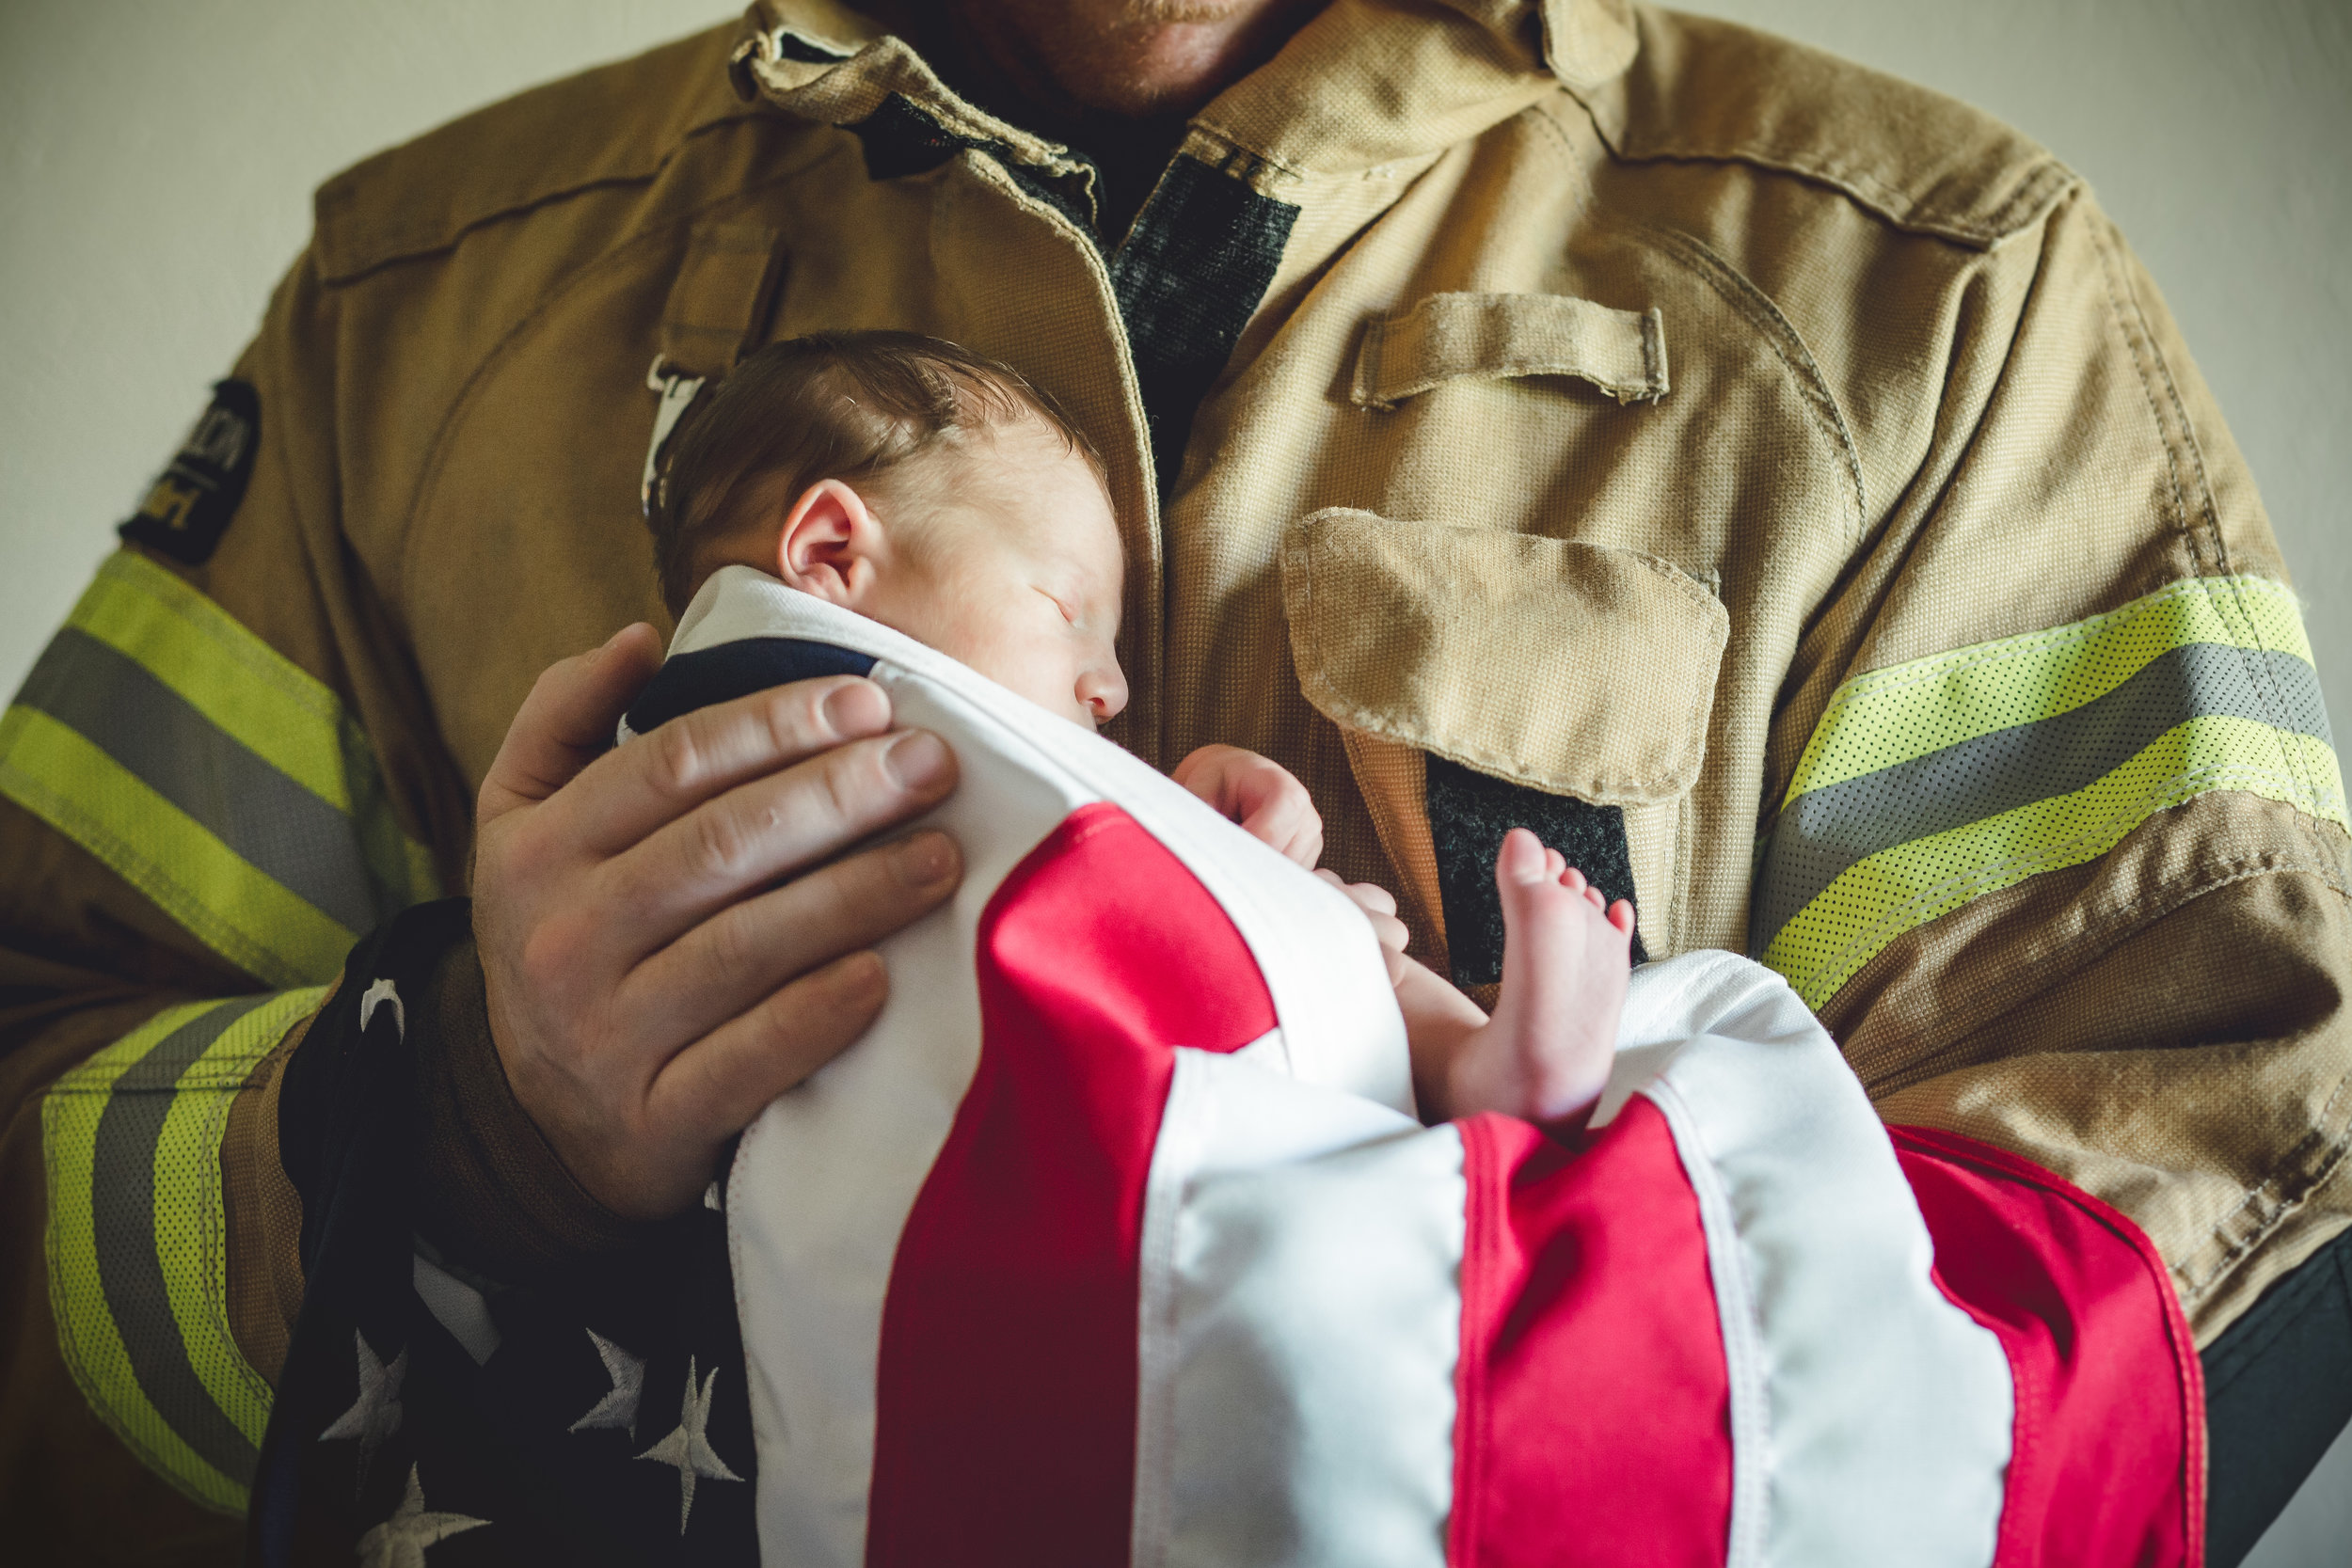 Amanda | Paramedic | Fort Worth - It's a moment in time that goes by so fast, and Jessica was able to capture every detail for us. From his tiny toes to his precious nose, the beauty and blessing of our newborn will be forever with us.